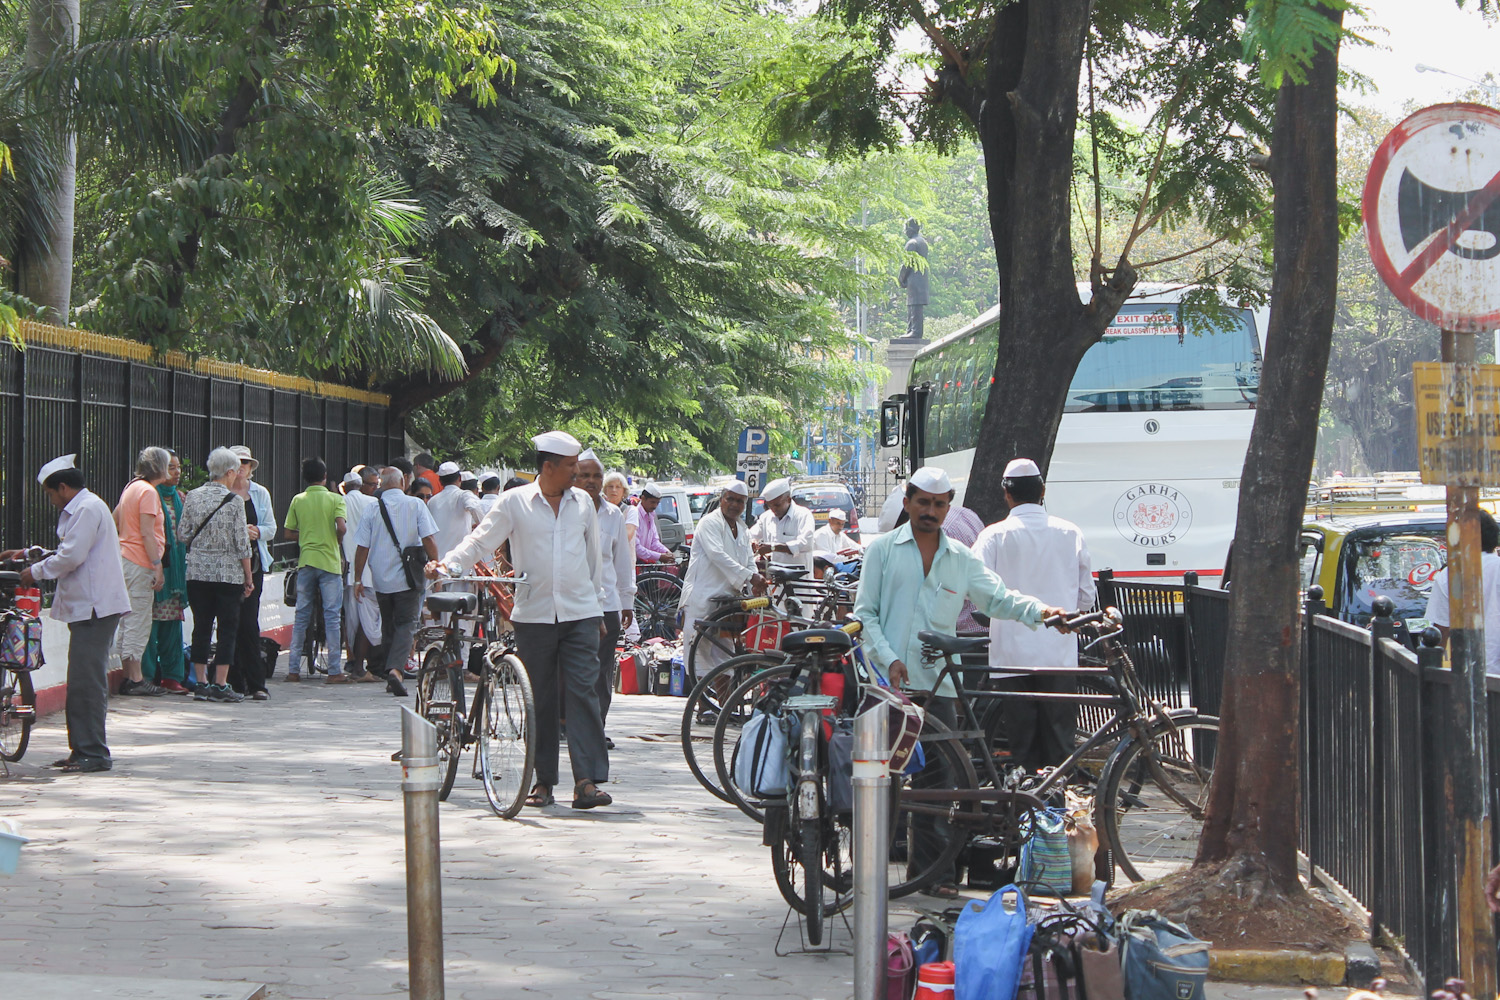 dabbawalas of mumbai The famous 'dabbawalas of mumbai' celebrated the royal wedding of prince harry and meghan markle by distributing sweets to patients.